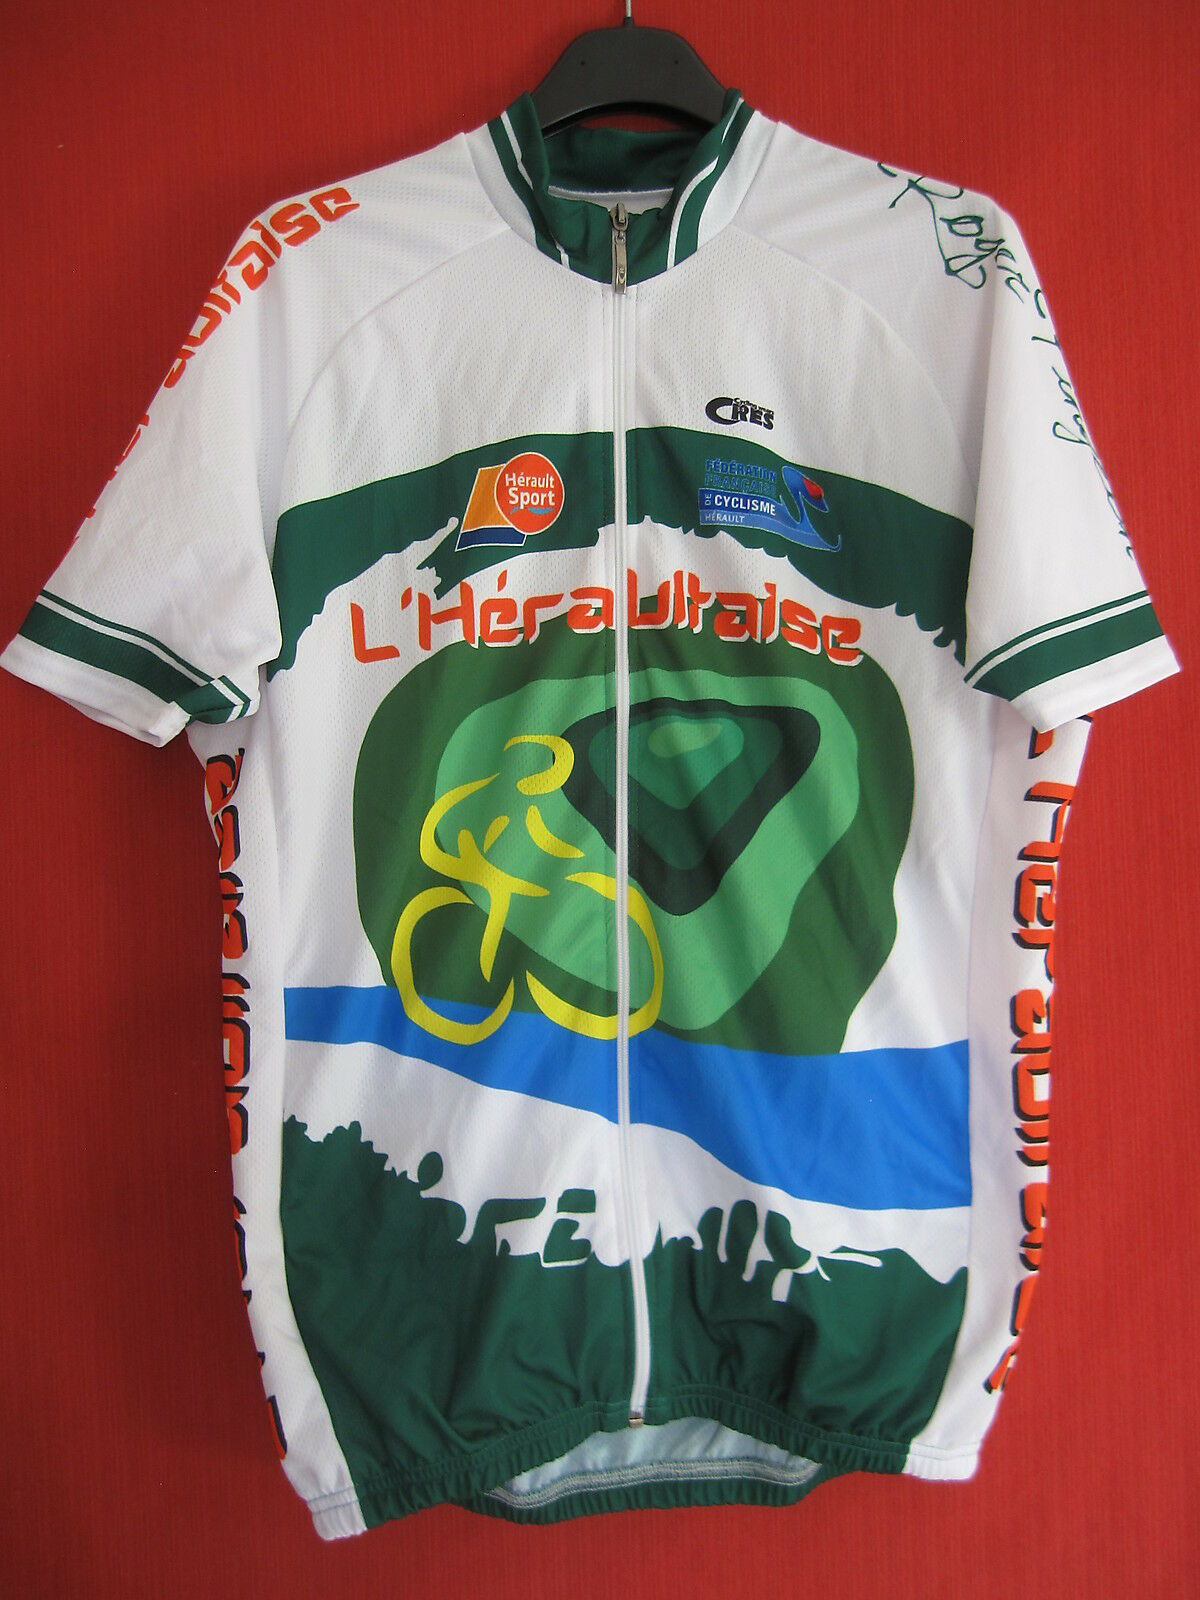 Maillot Cycliste Herault Sport Heraultaise CRES 34 FFC Velo - XL